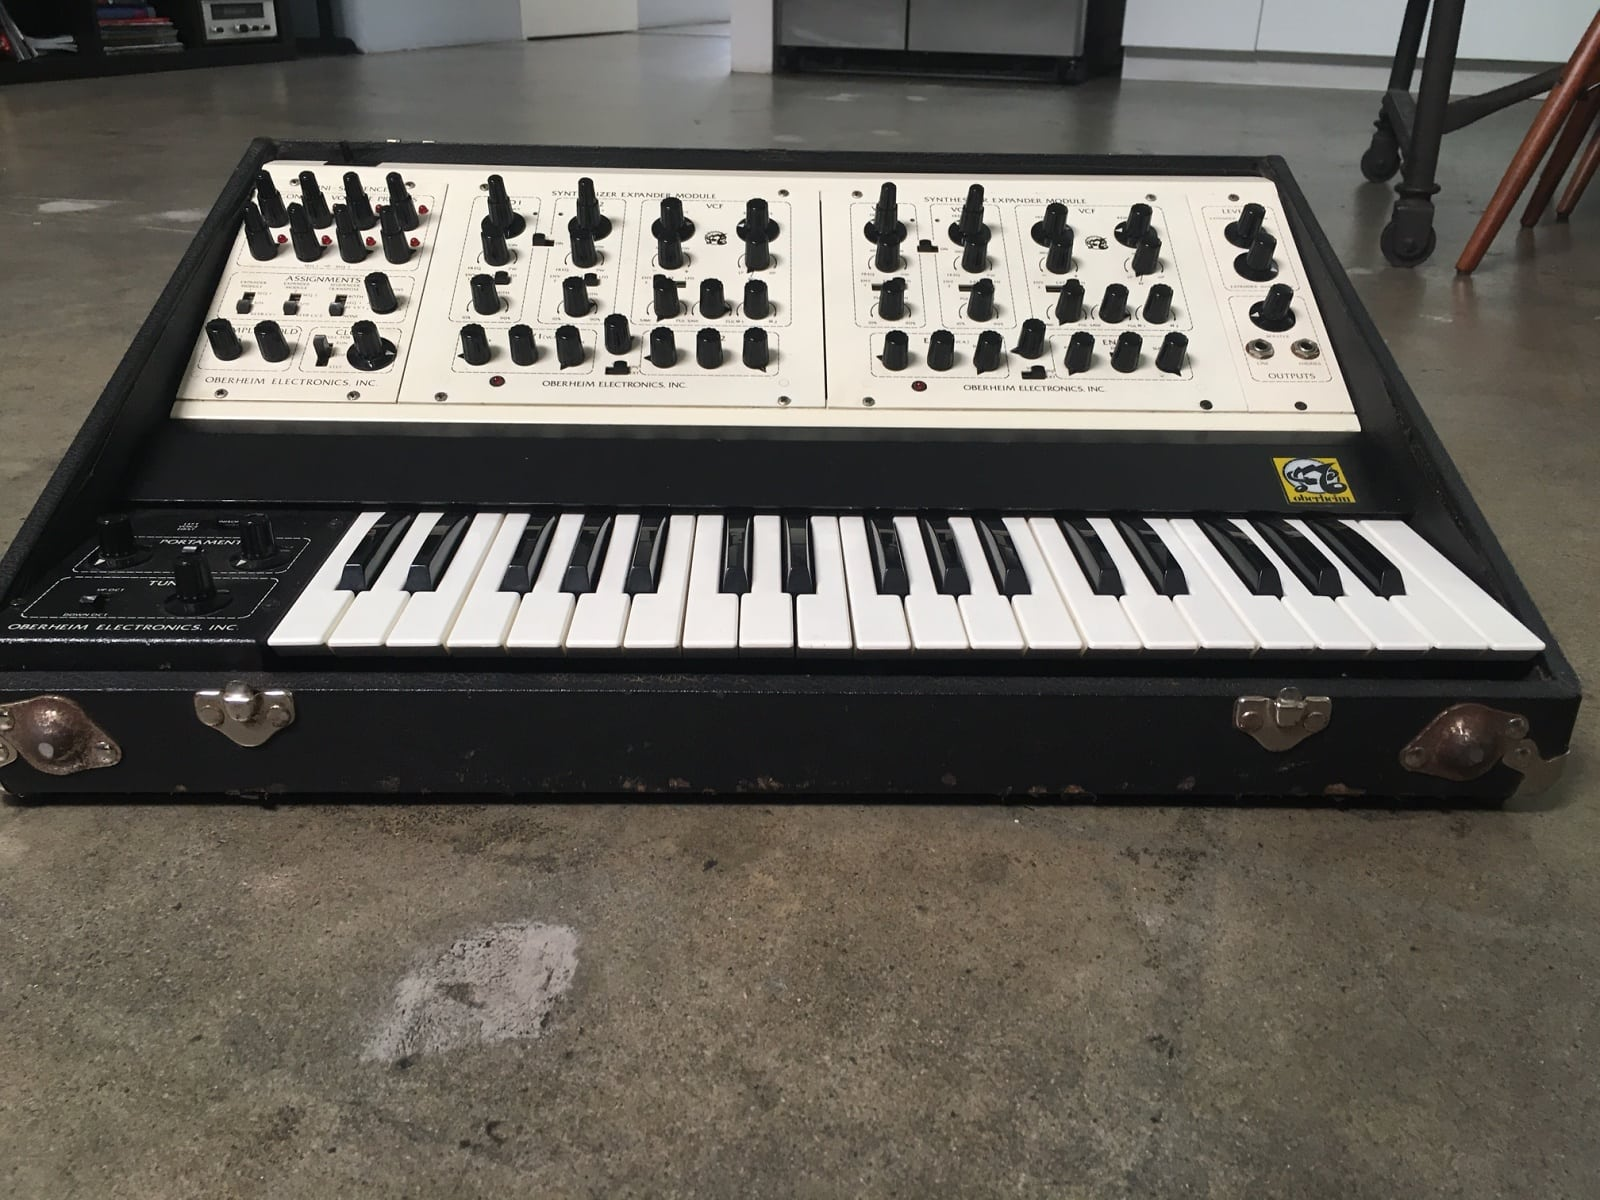 Matrixsynth Oberheim Two Voice 2 Vintage Analog Synth With Mods Gamis Onthel Series Stereo Jack Split The L Sem On And R Cv Filter Gate For 1 Clock In Sequencer